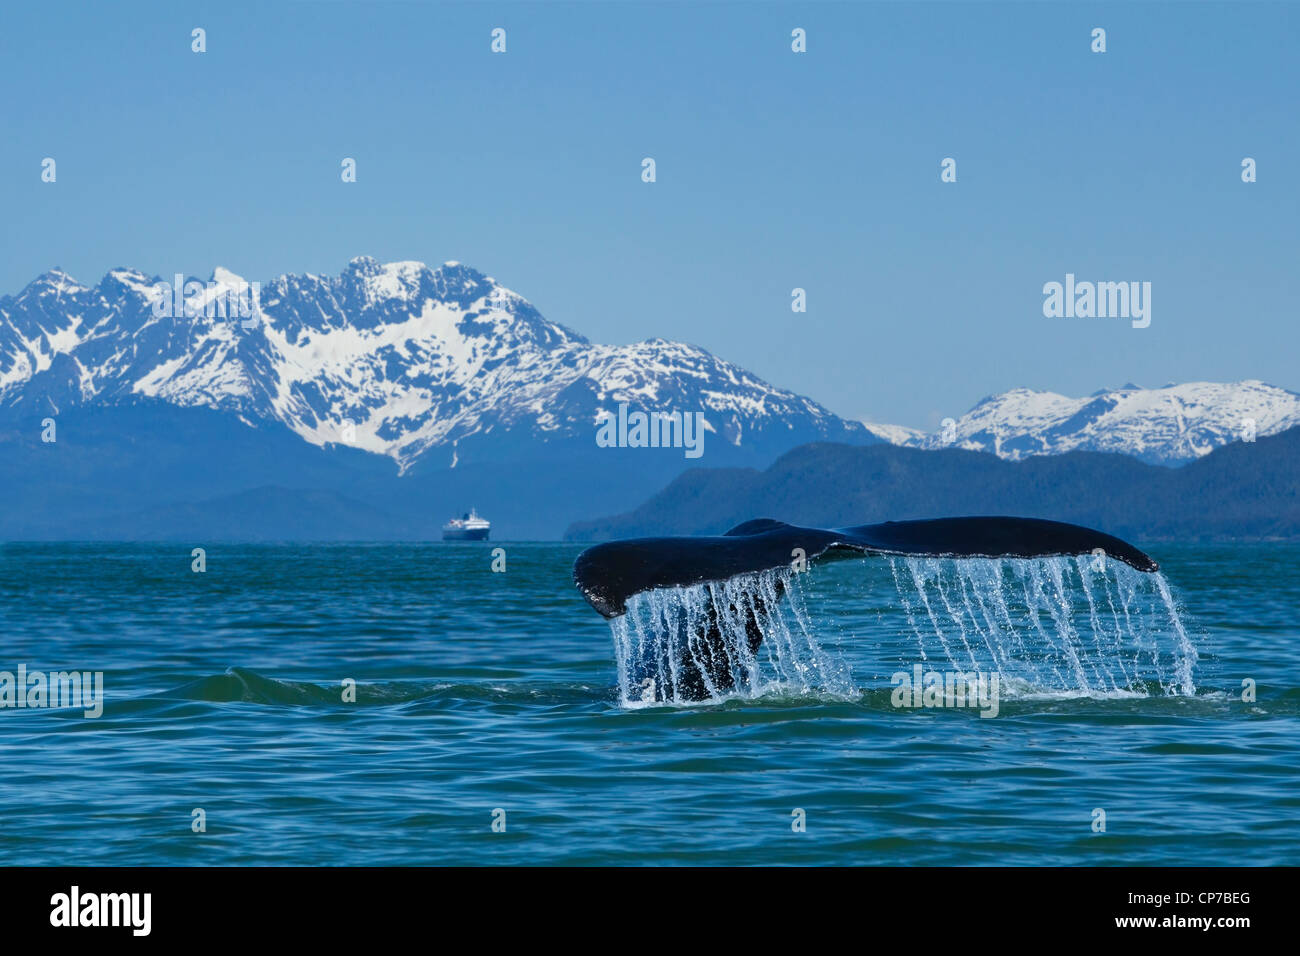 COMPOSITE: Humpback Whale fluking in Lynn Canal with M/V Matanuska in the distance, Inside Passage, Southeast Alaska, - Stock Image